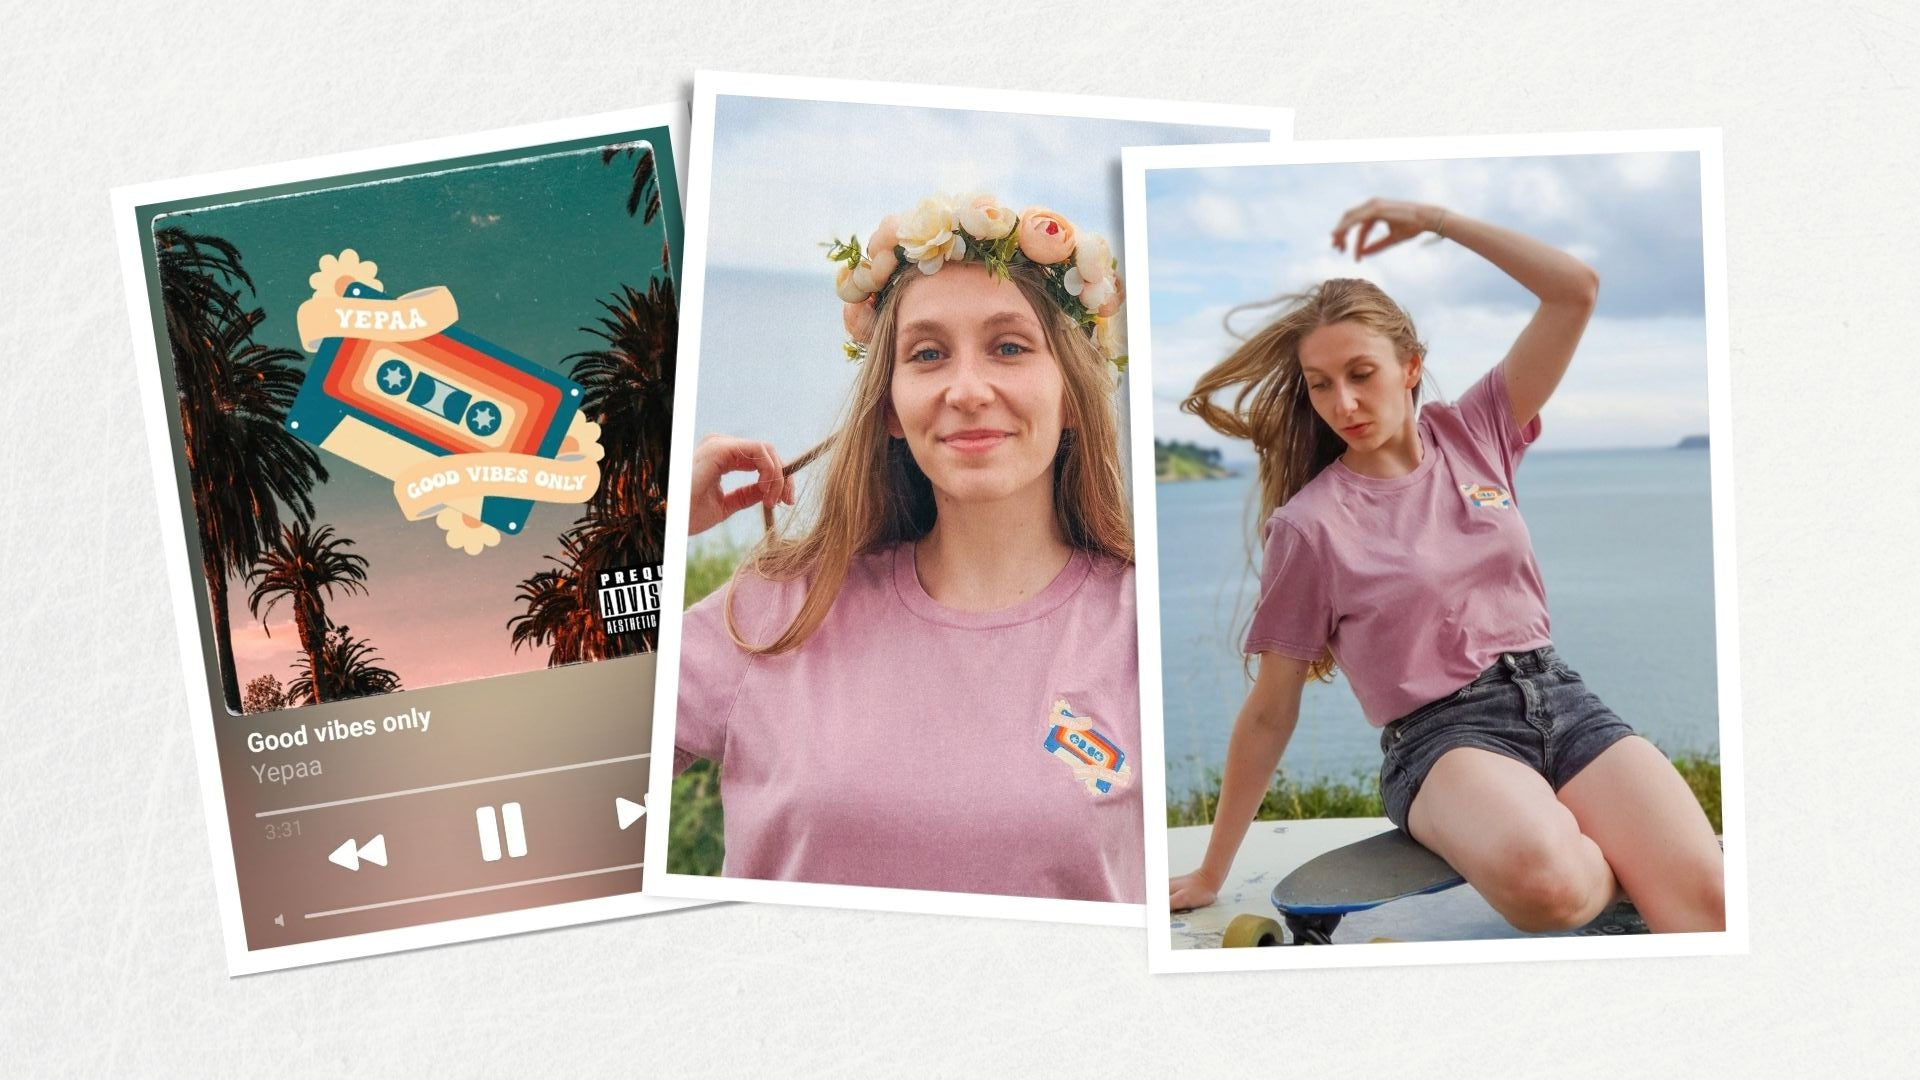 Good vibes only - Collection 2021 Yepaa, la mode durable française surfwear et skate wear - Collection Summer of love